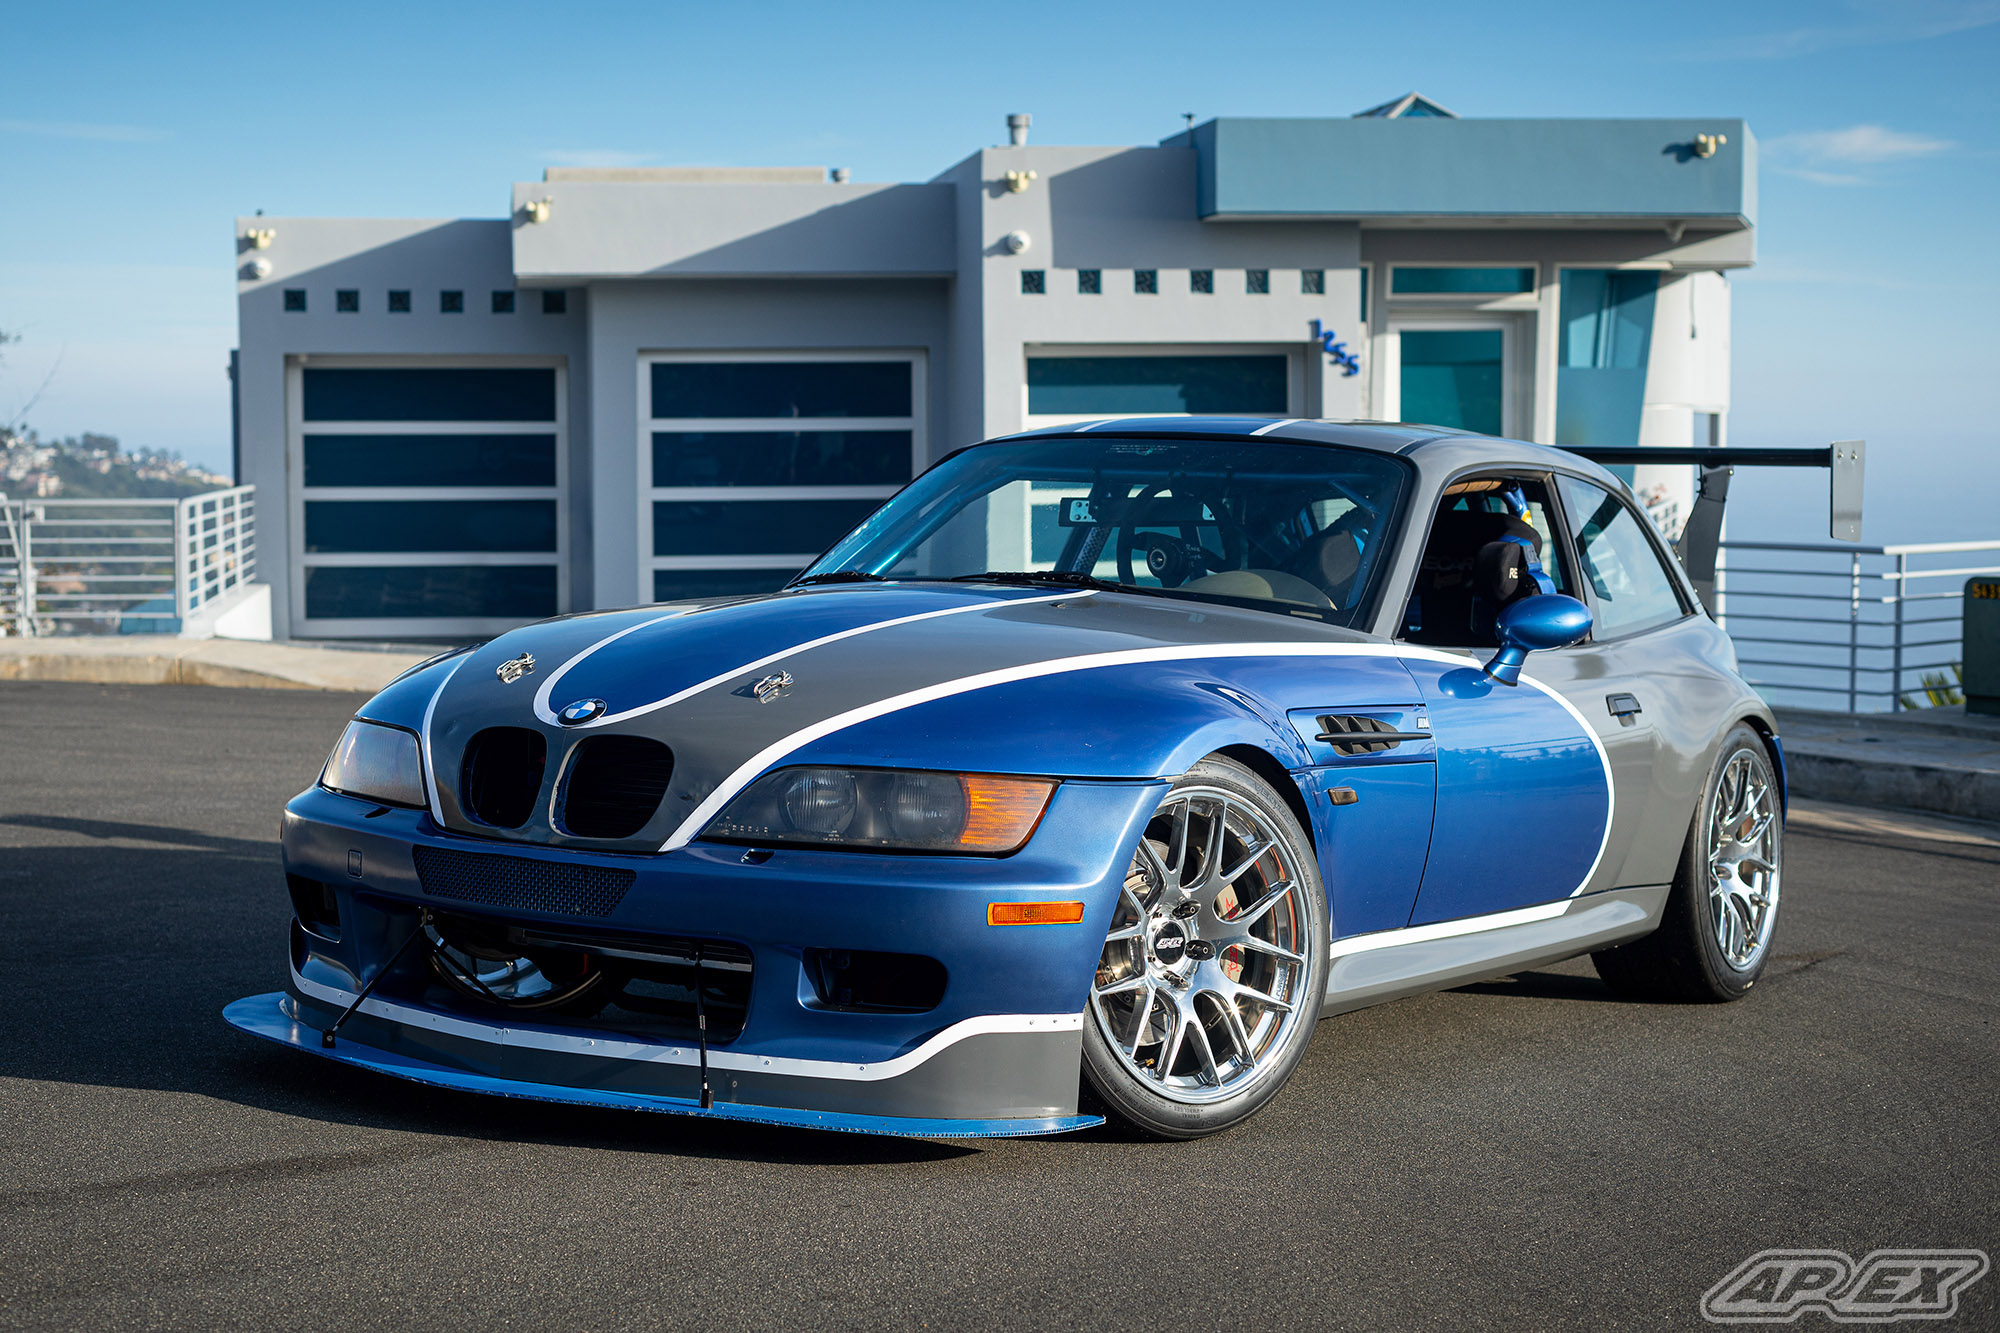 Estoril Blue Z3M Coupe Race Car on Fully Polished APEX EC-7R Forged Wheels